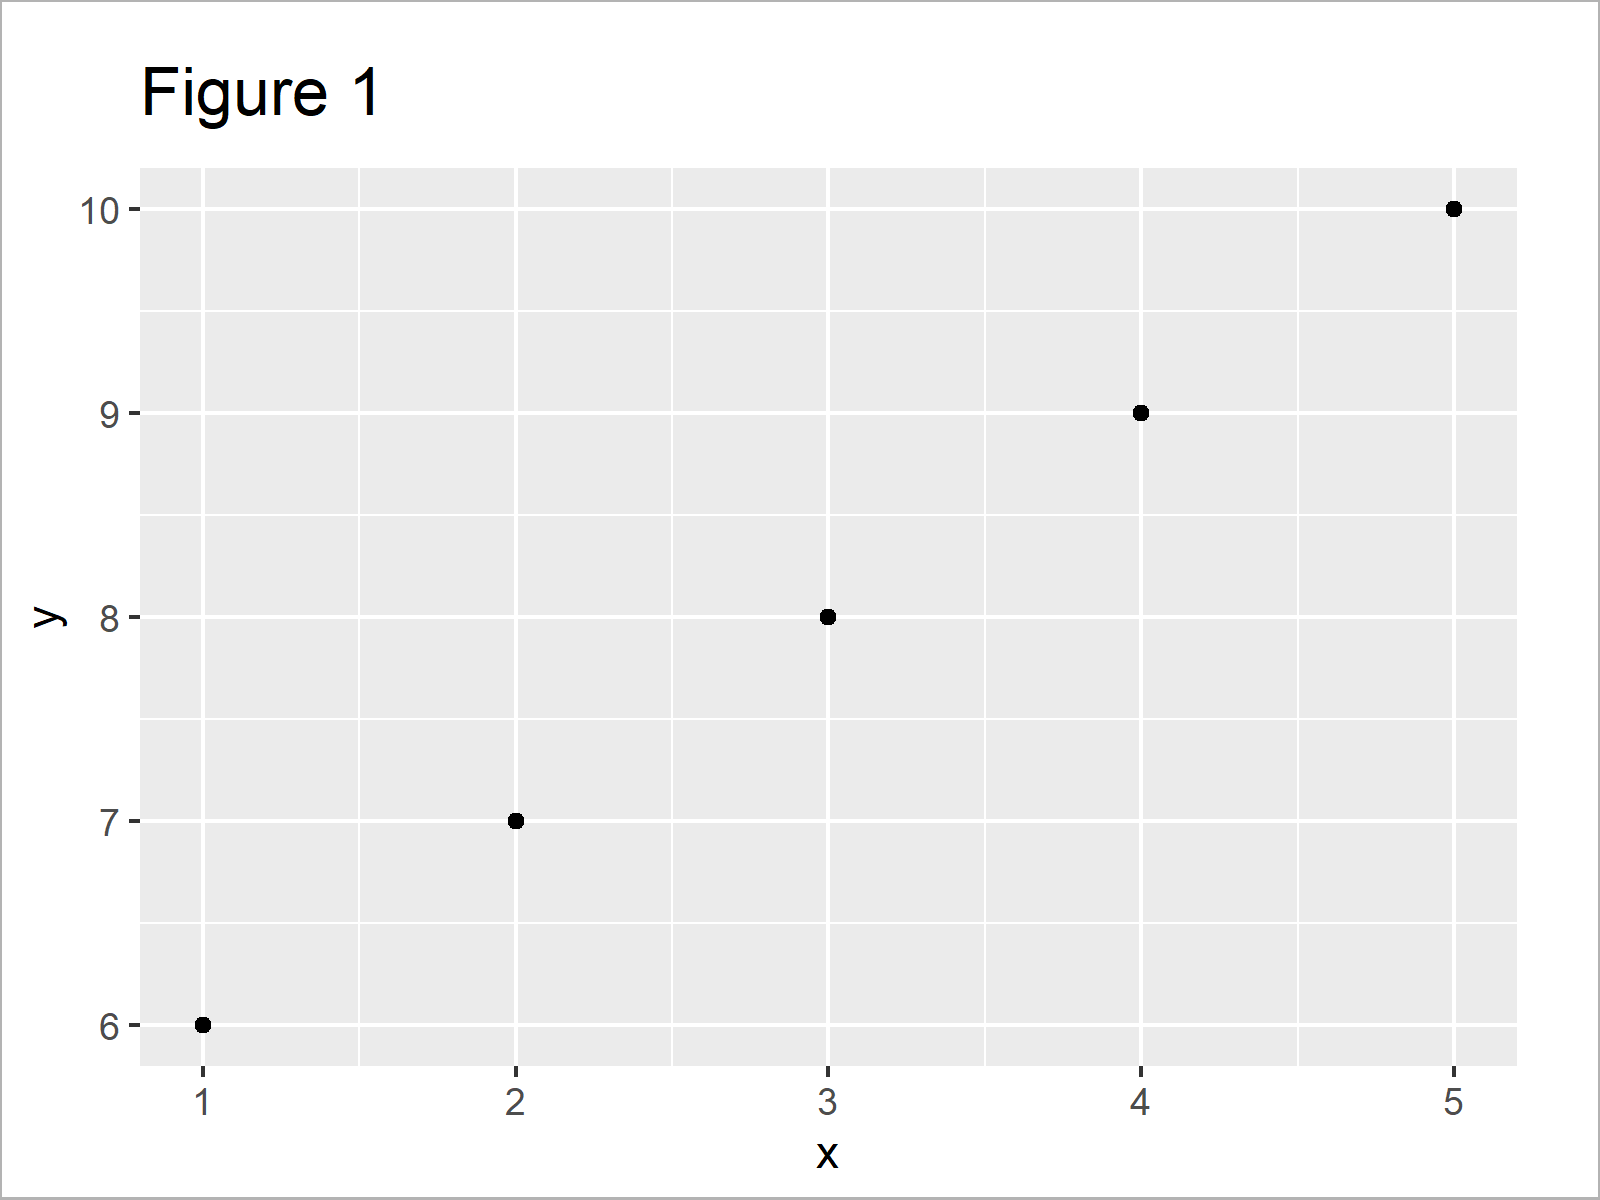 r graph figure 1 r ggplot2 error mapping should be created aes